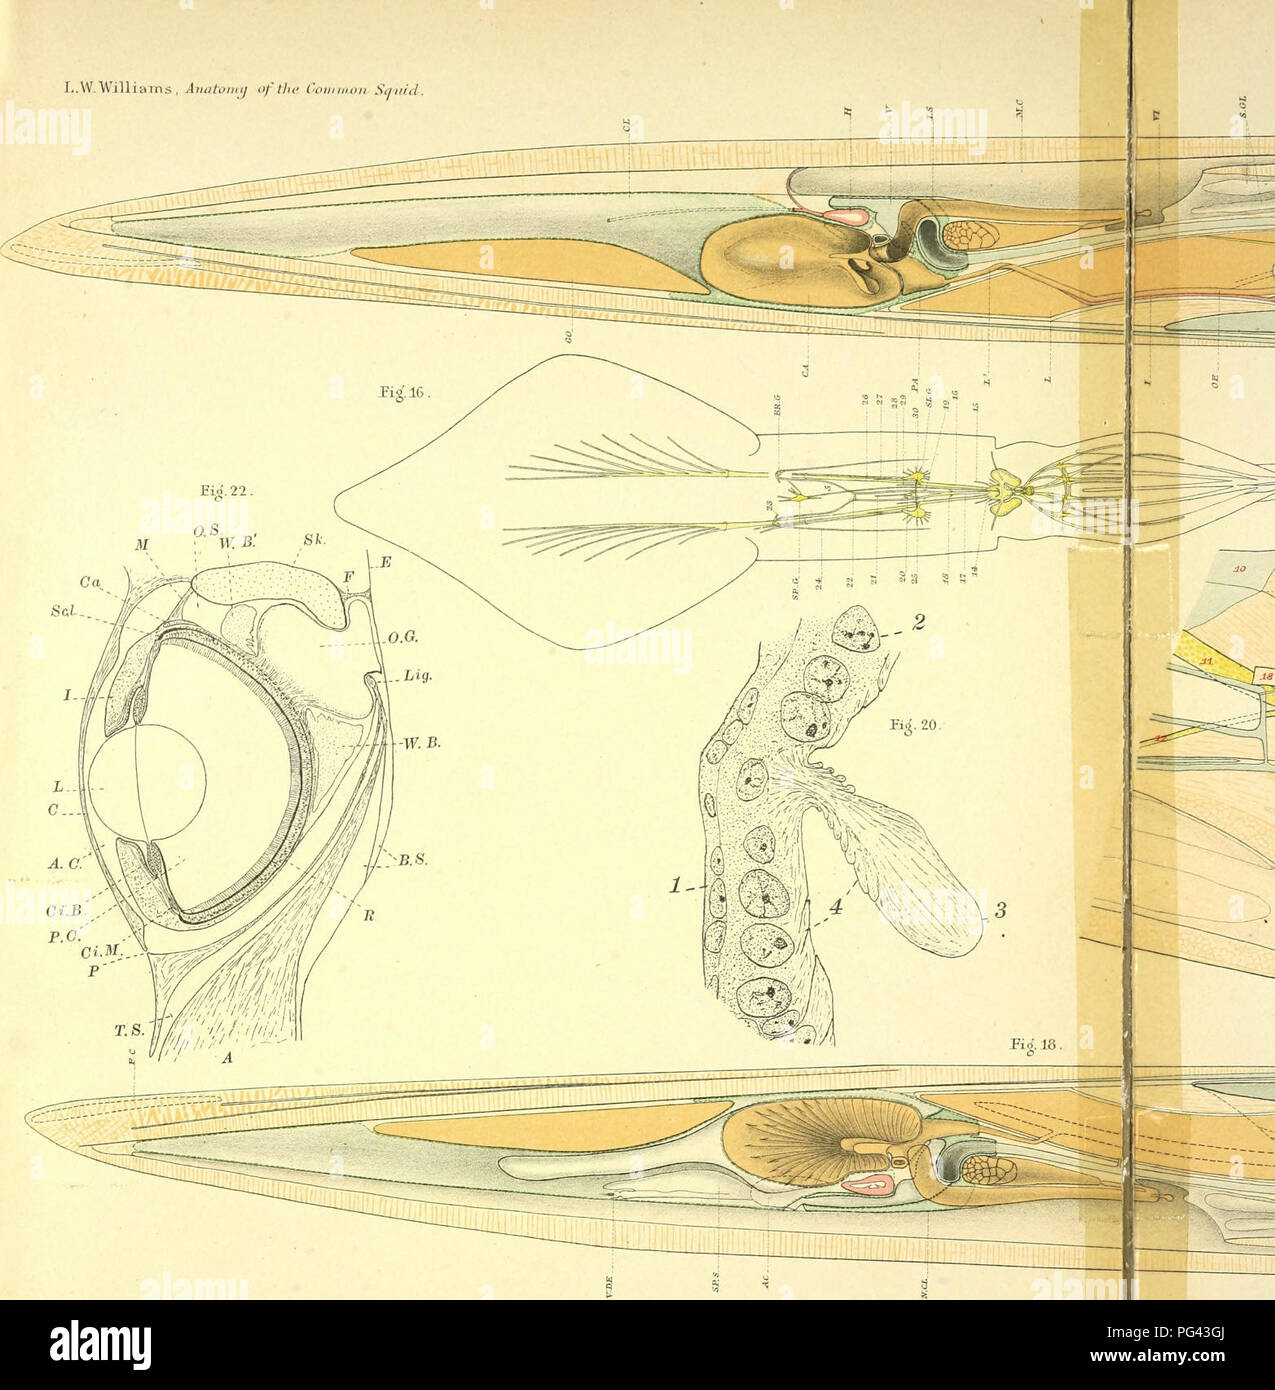 Squid Anatomy Diagram Image Search Results